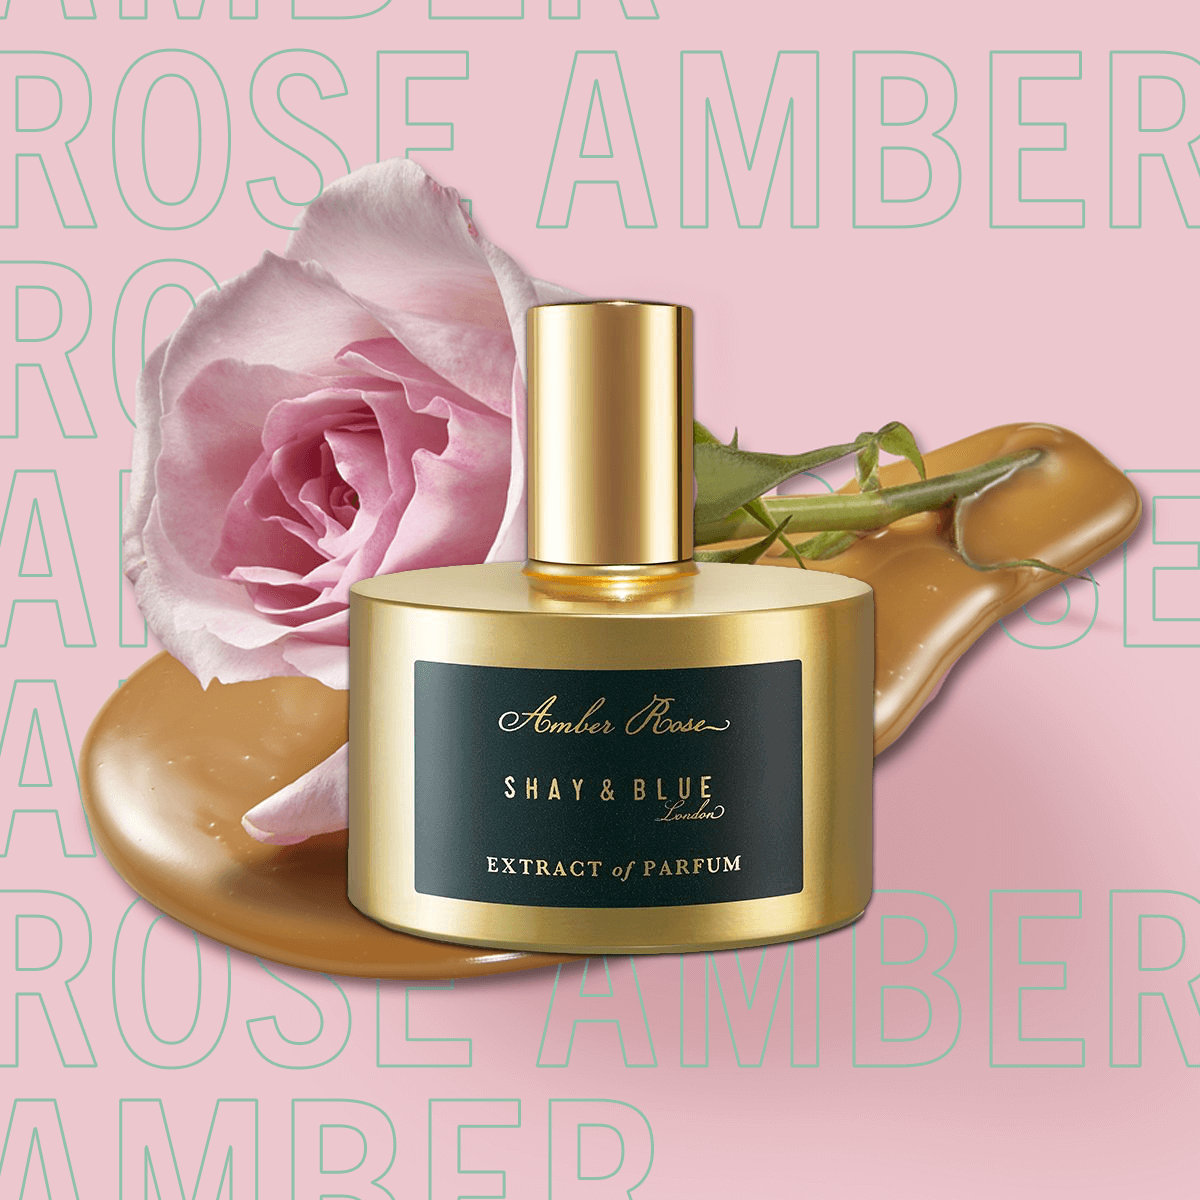 Amber Rose Extract of Parfum 60ml | New season May Rose is blended with white amber and sweet creamy notes. | Clean All Gender Fragrance | Shay & Blue